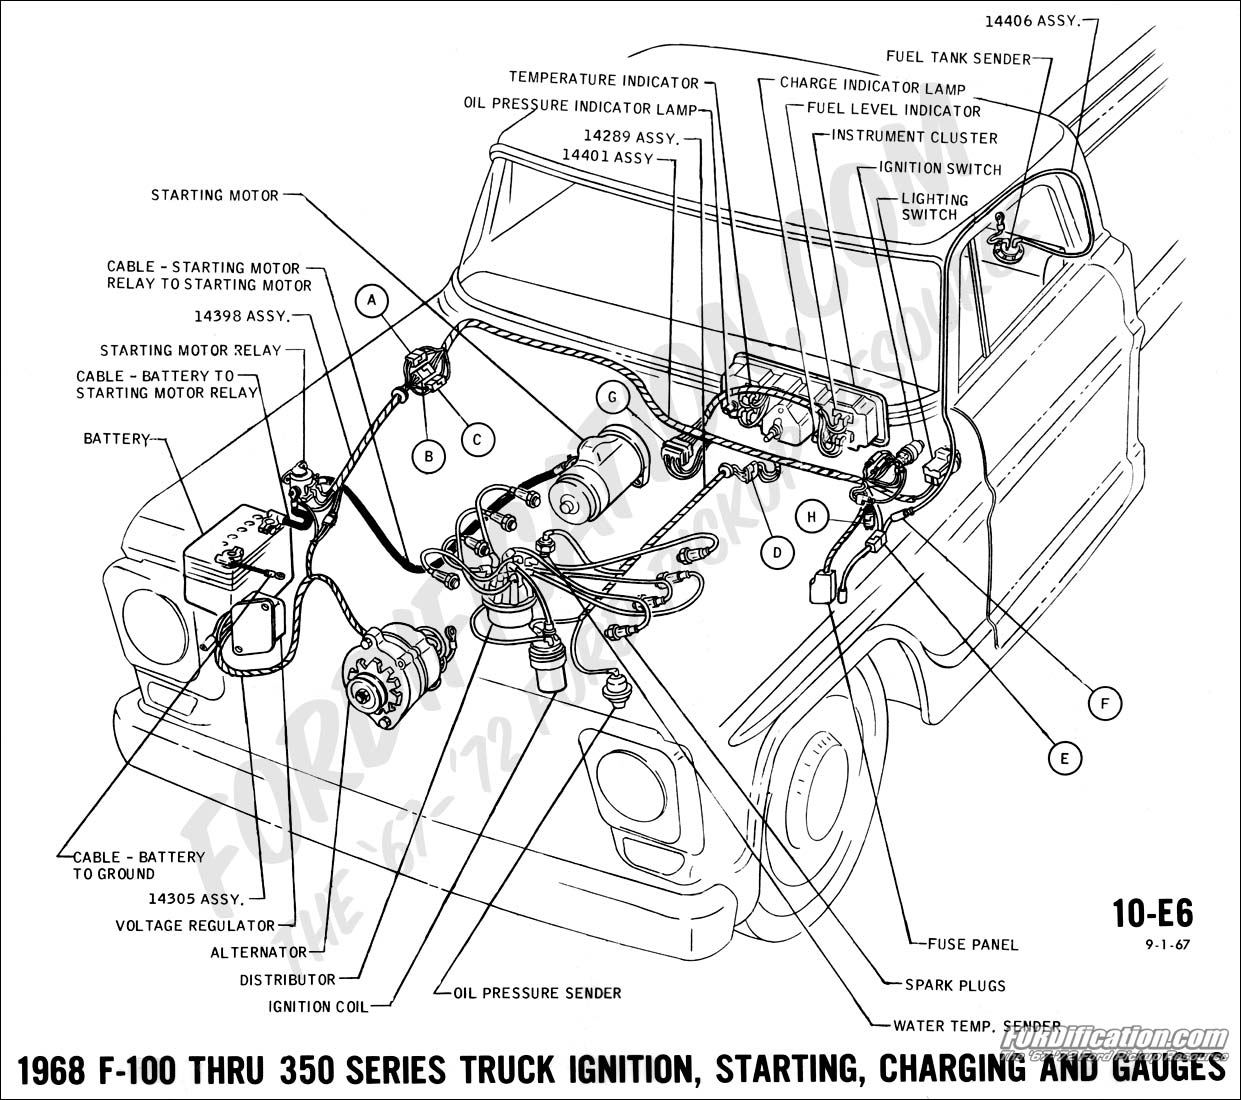 [WRG-3813] 68 Ford F100 Wiring Diagram